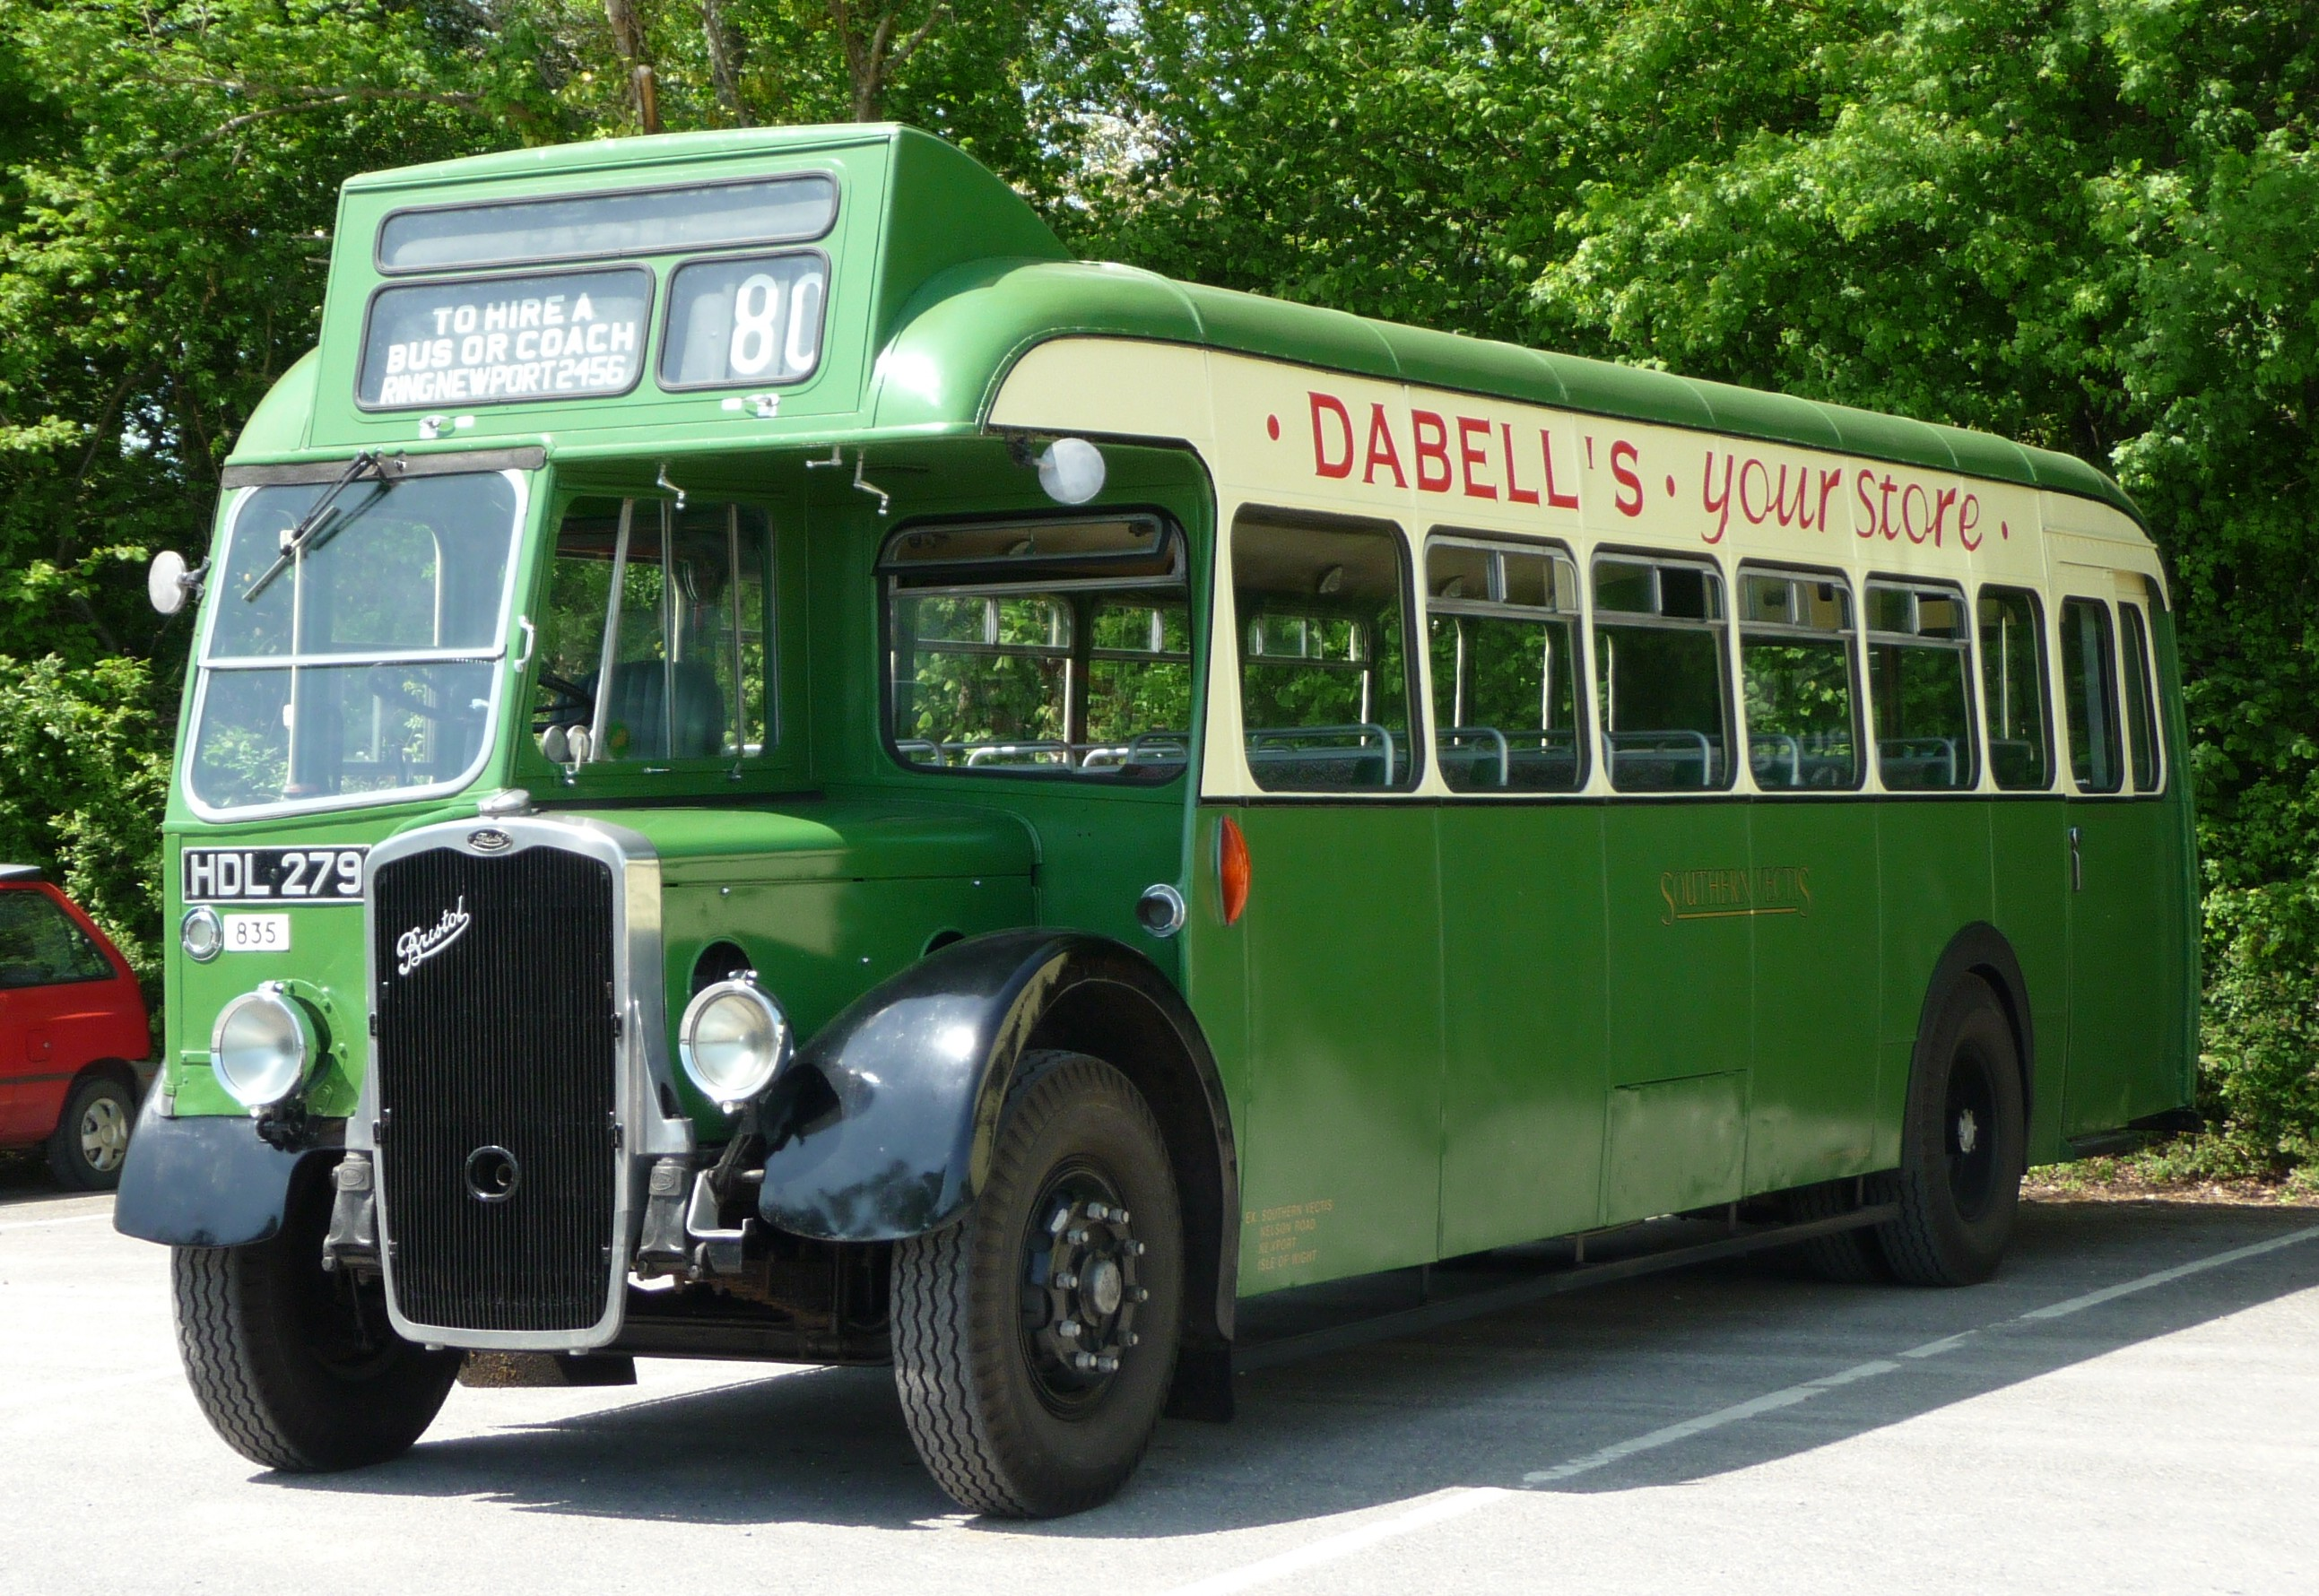 File:Southern Vectis 835 HDL 279 2.JPG